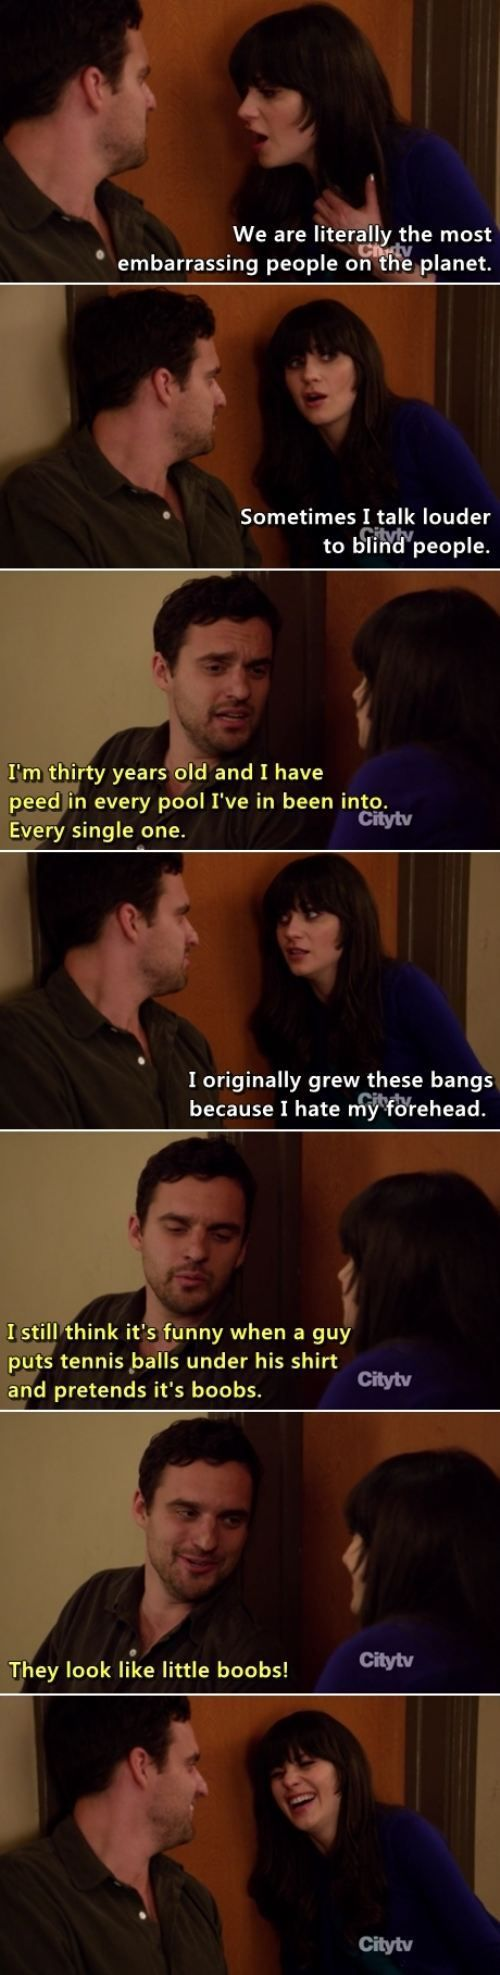 I love new girl❤️❤️